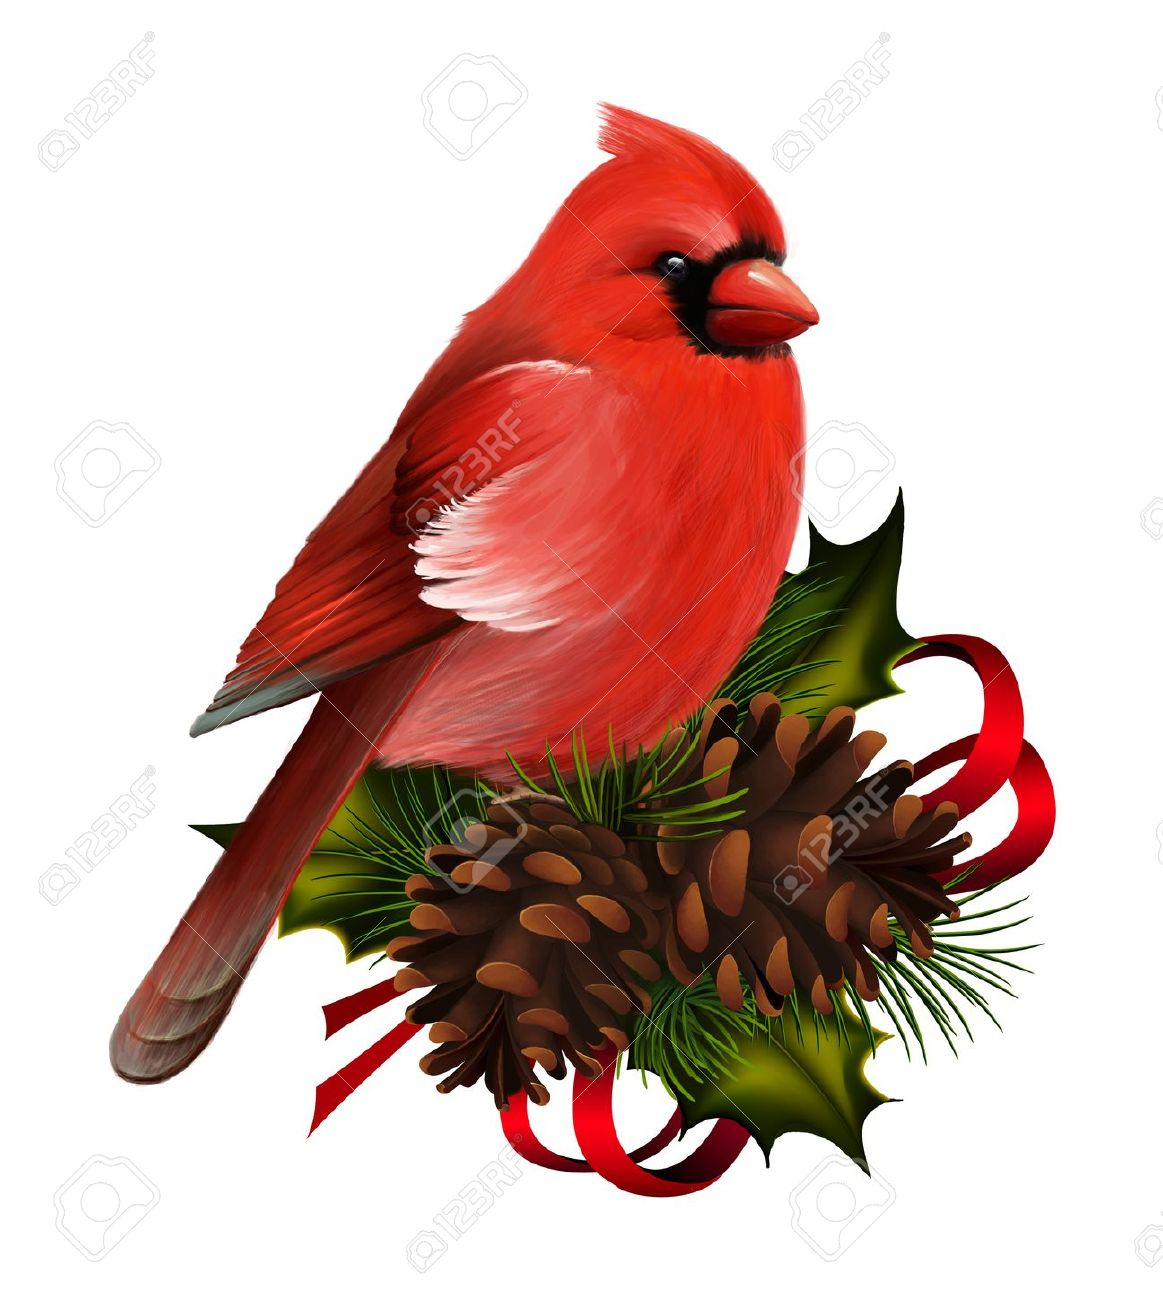 Cardinal clipart branch clipart.  collection of free